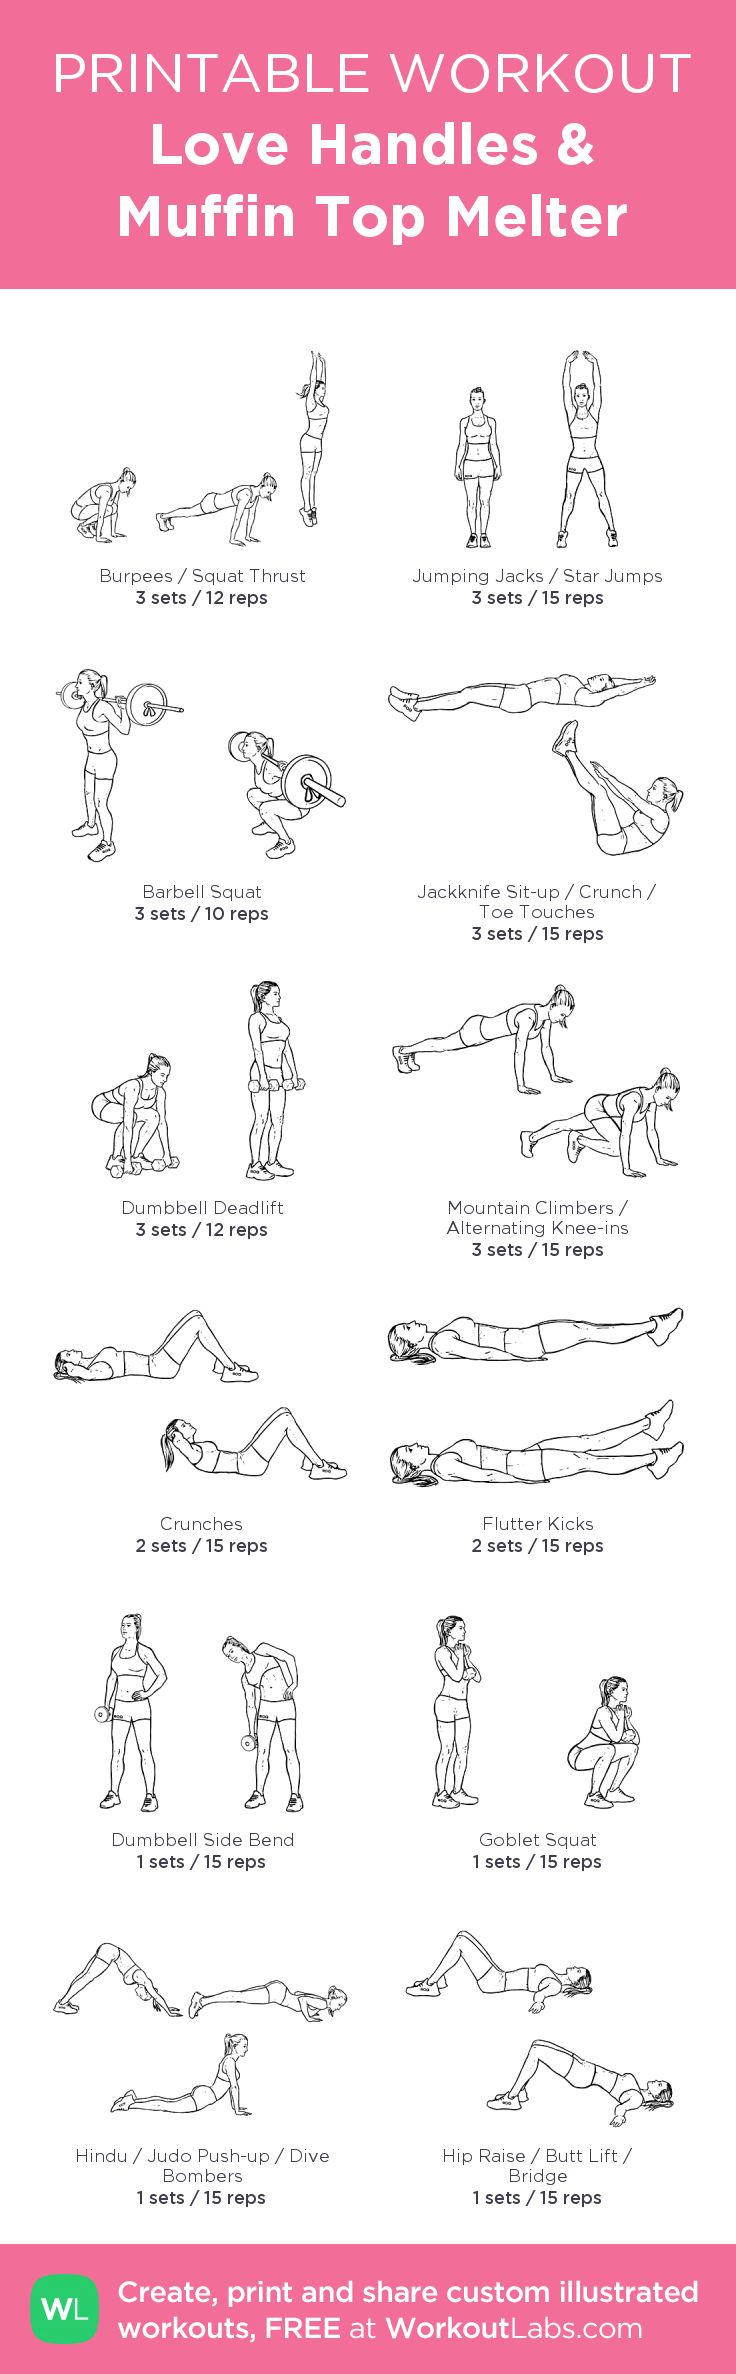 Love Handles & Muffin Top Melter:my visual workout created at WorkoutLabs.com • Click through to customize and download as a FREE PDF! #customworkout